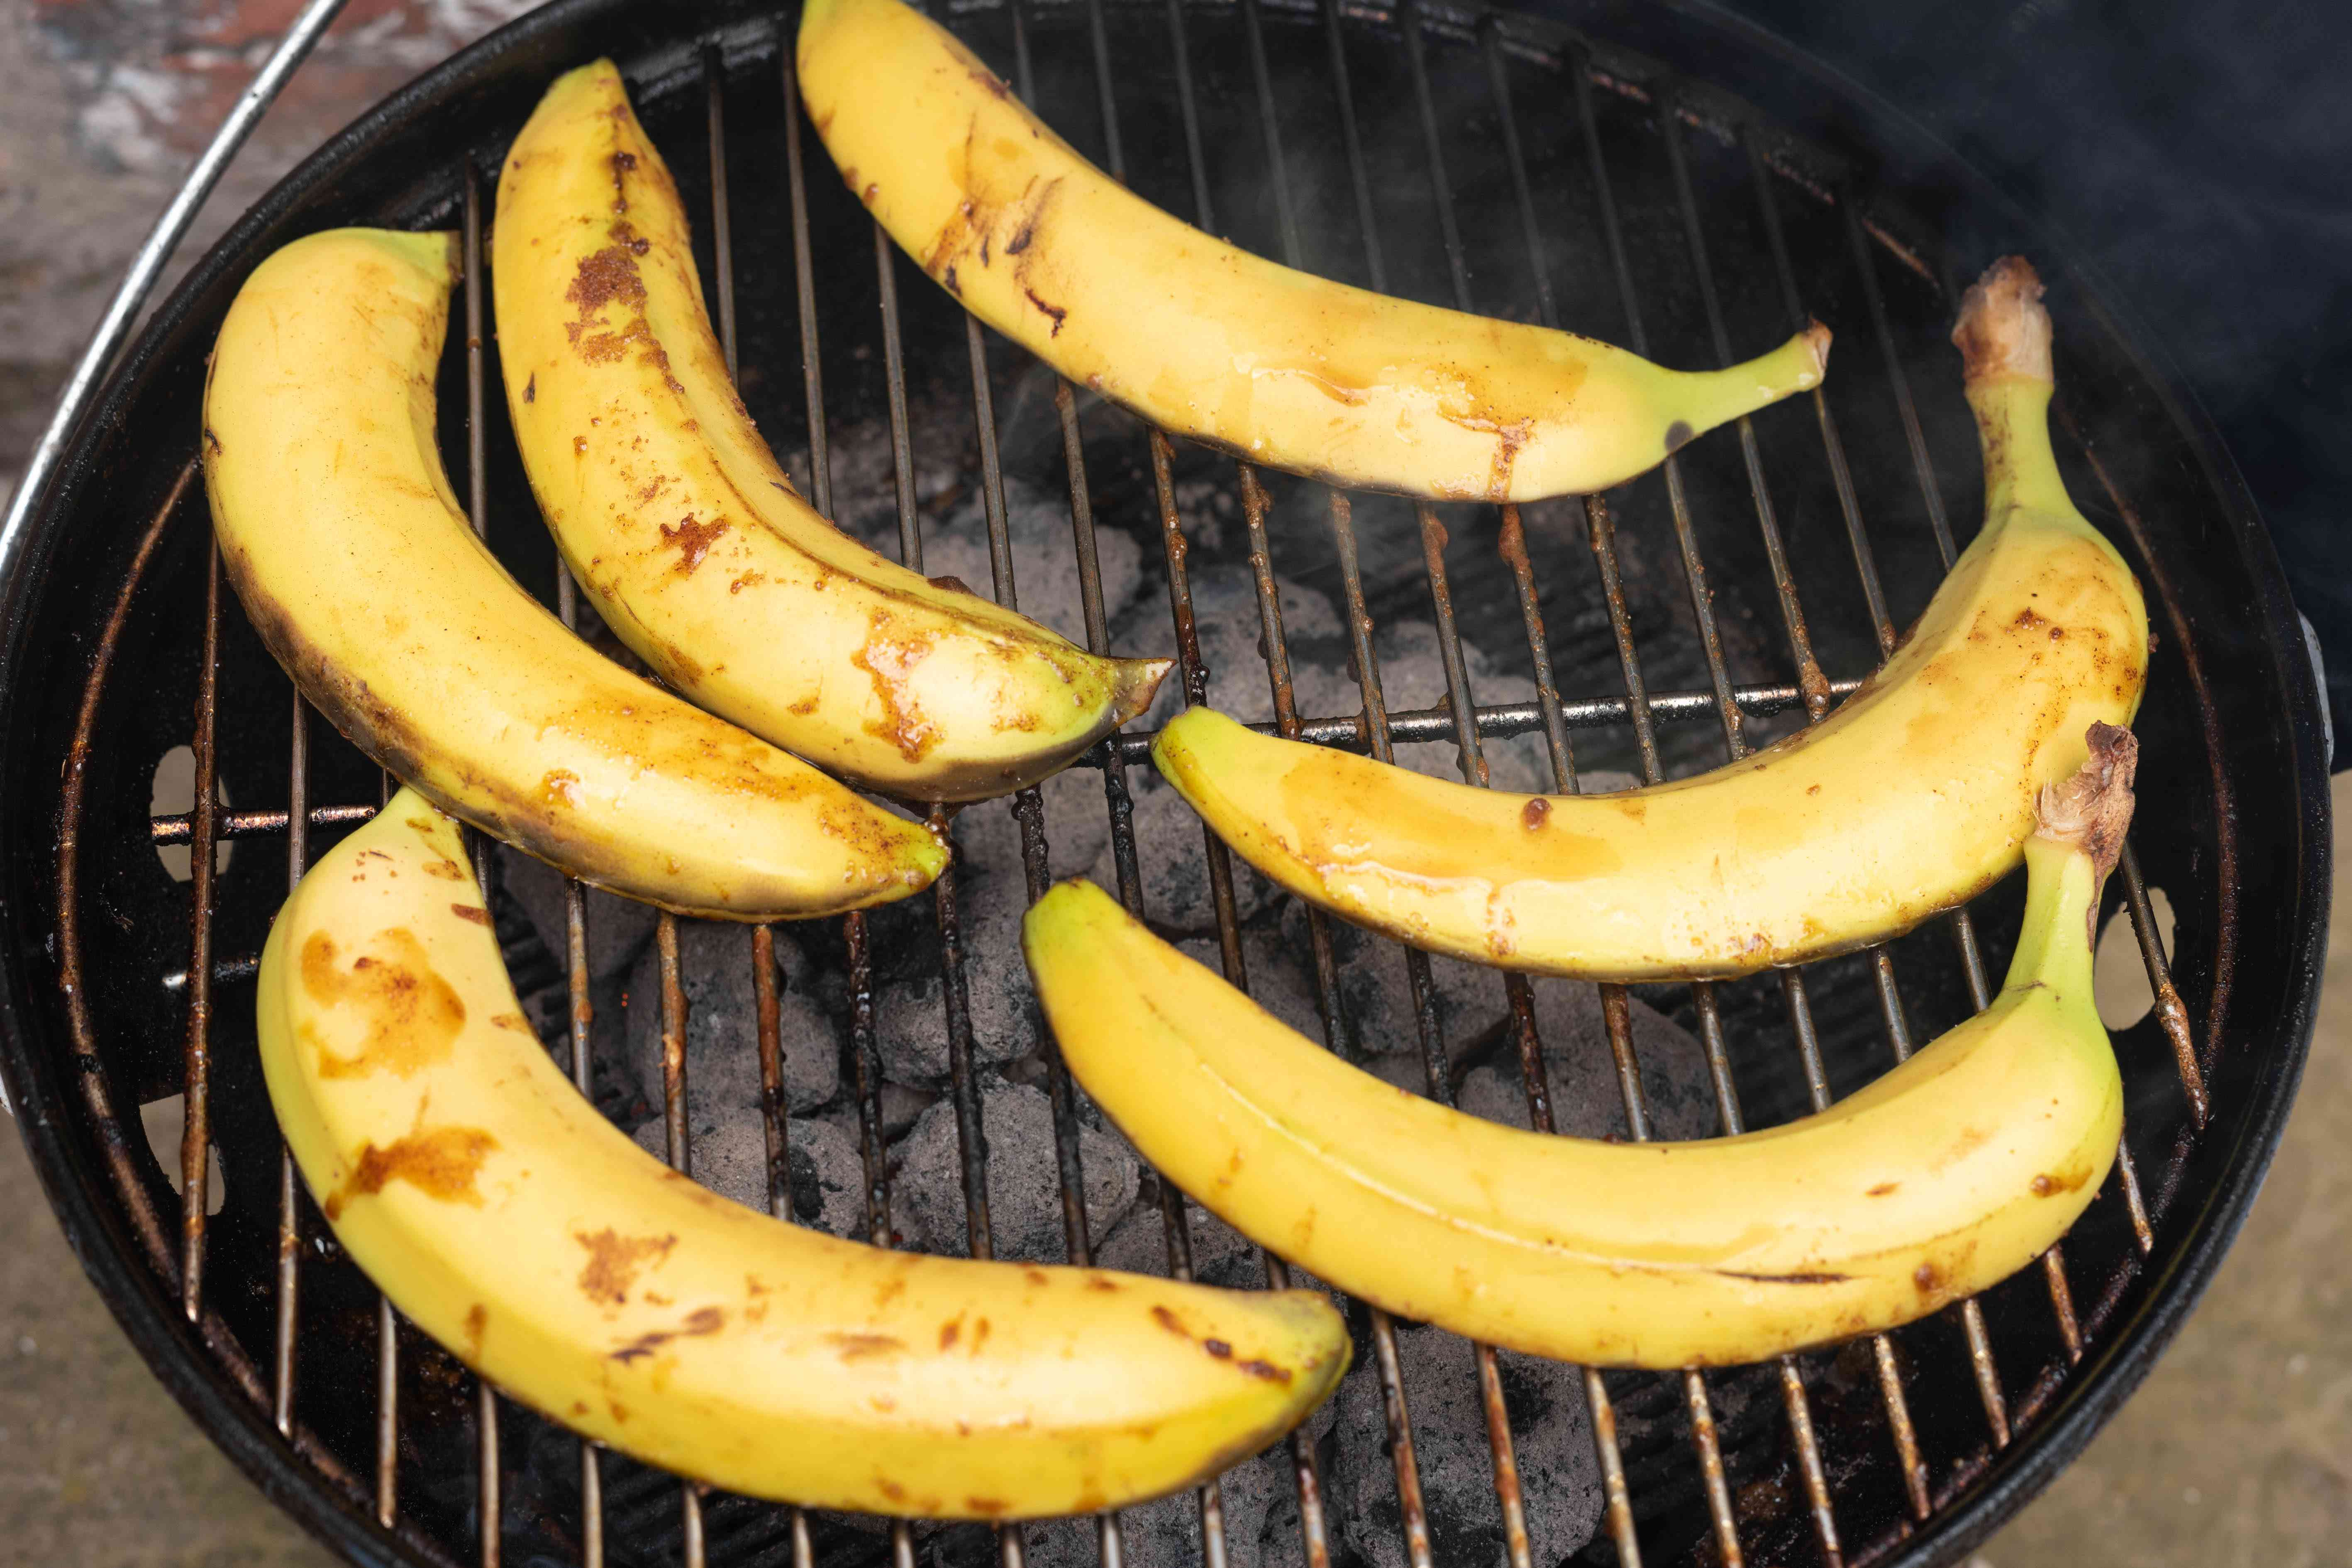 bananas on a grill